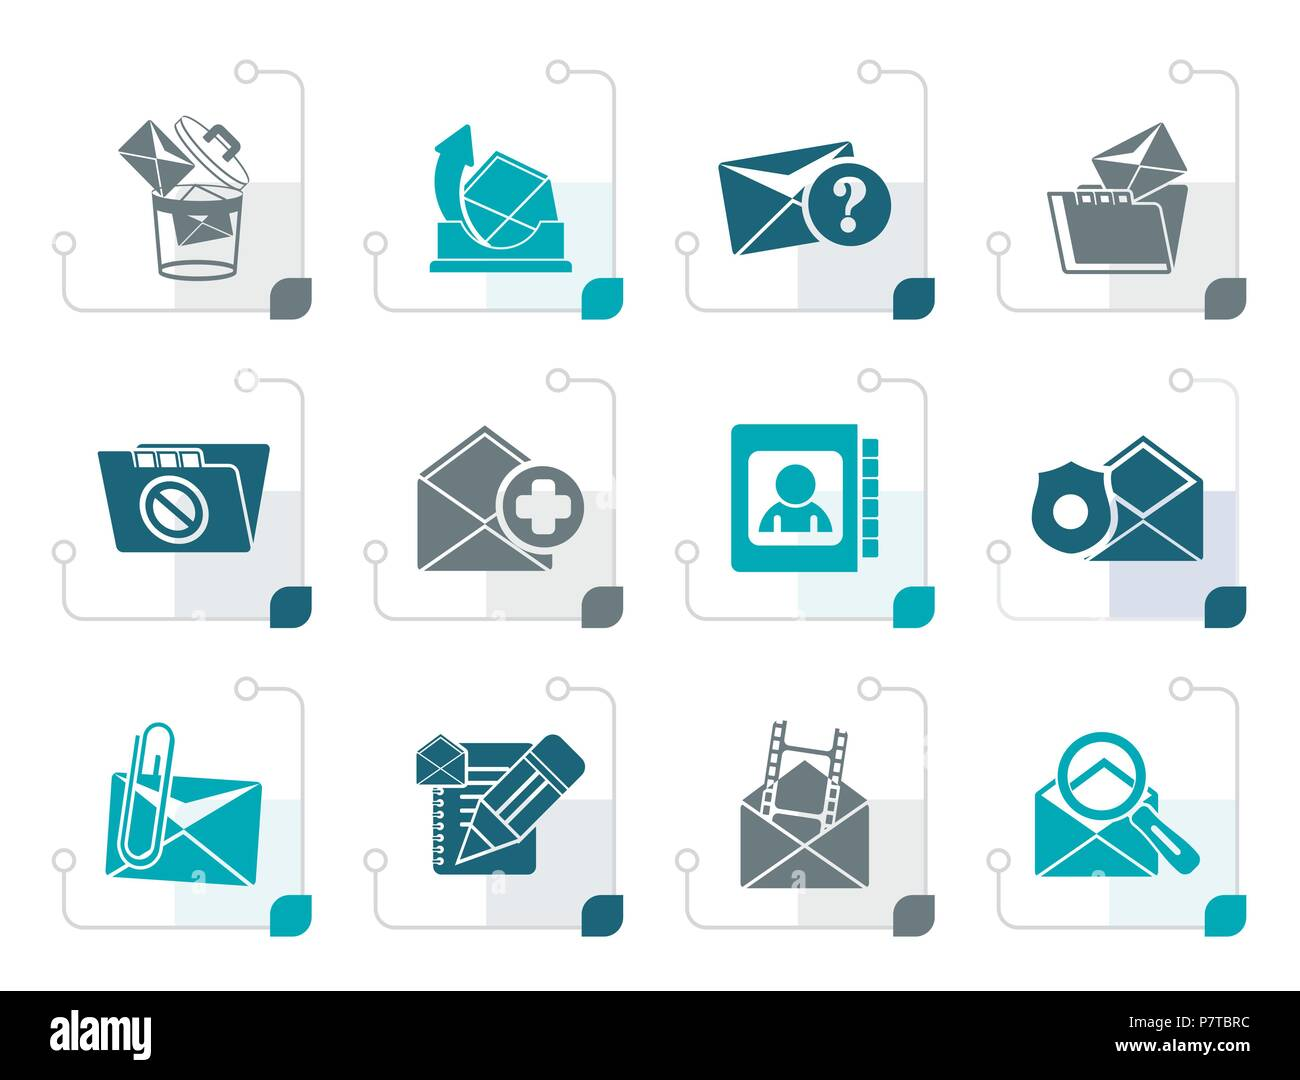 Stylized E-mail and Message Icons - vector icon set - Stock Image